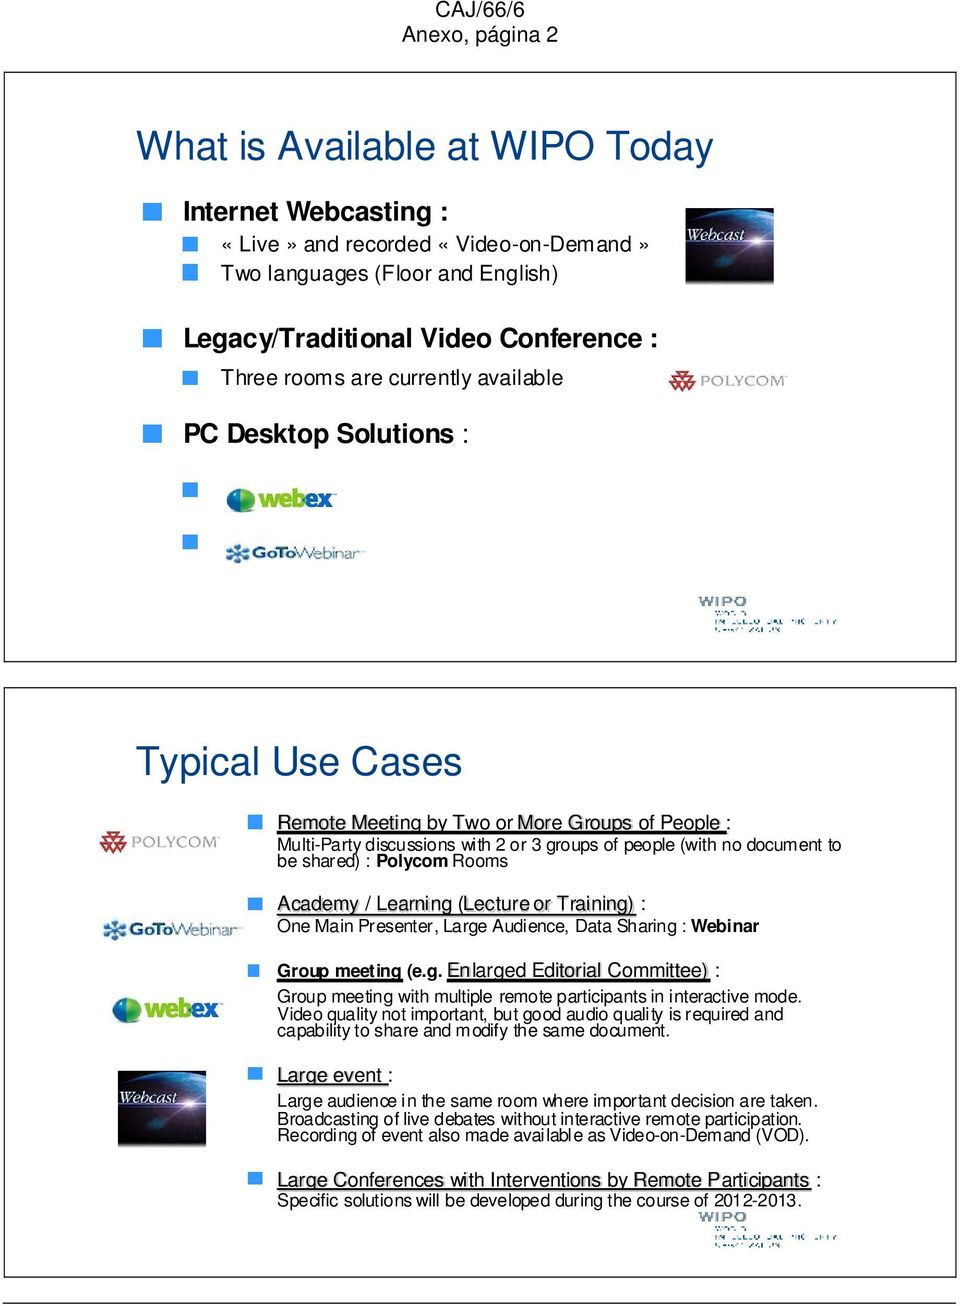 Polycom Rooms Academy / Learning (Lecture or Training) : One Main Presenter, Large Audience, Data Sharing : Webinar Group meeting (e.g. Enlarged Editorial Committee) : Group meeting with multiple remote participants in interactive mode.